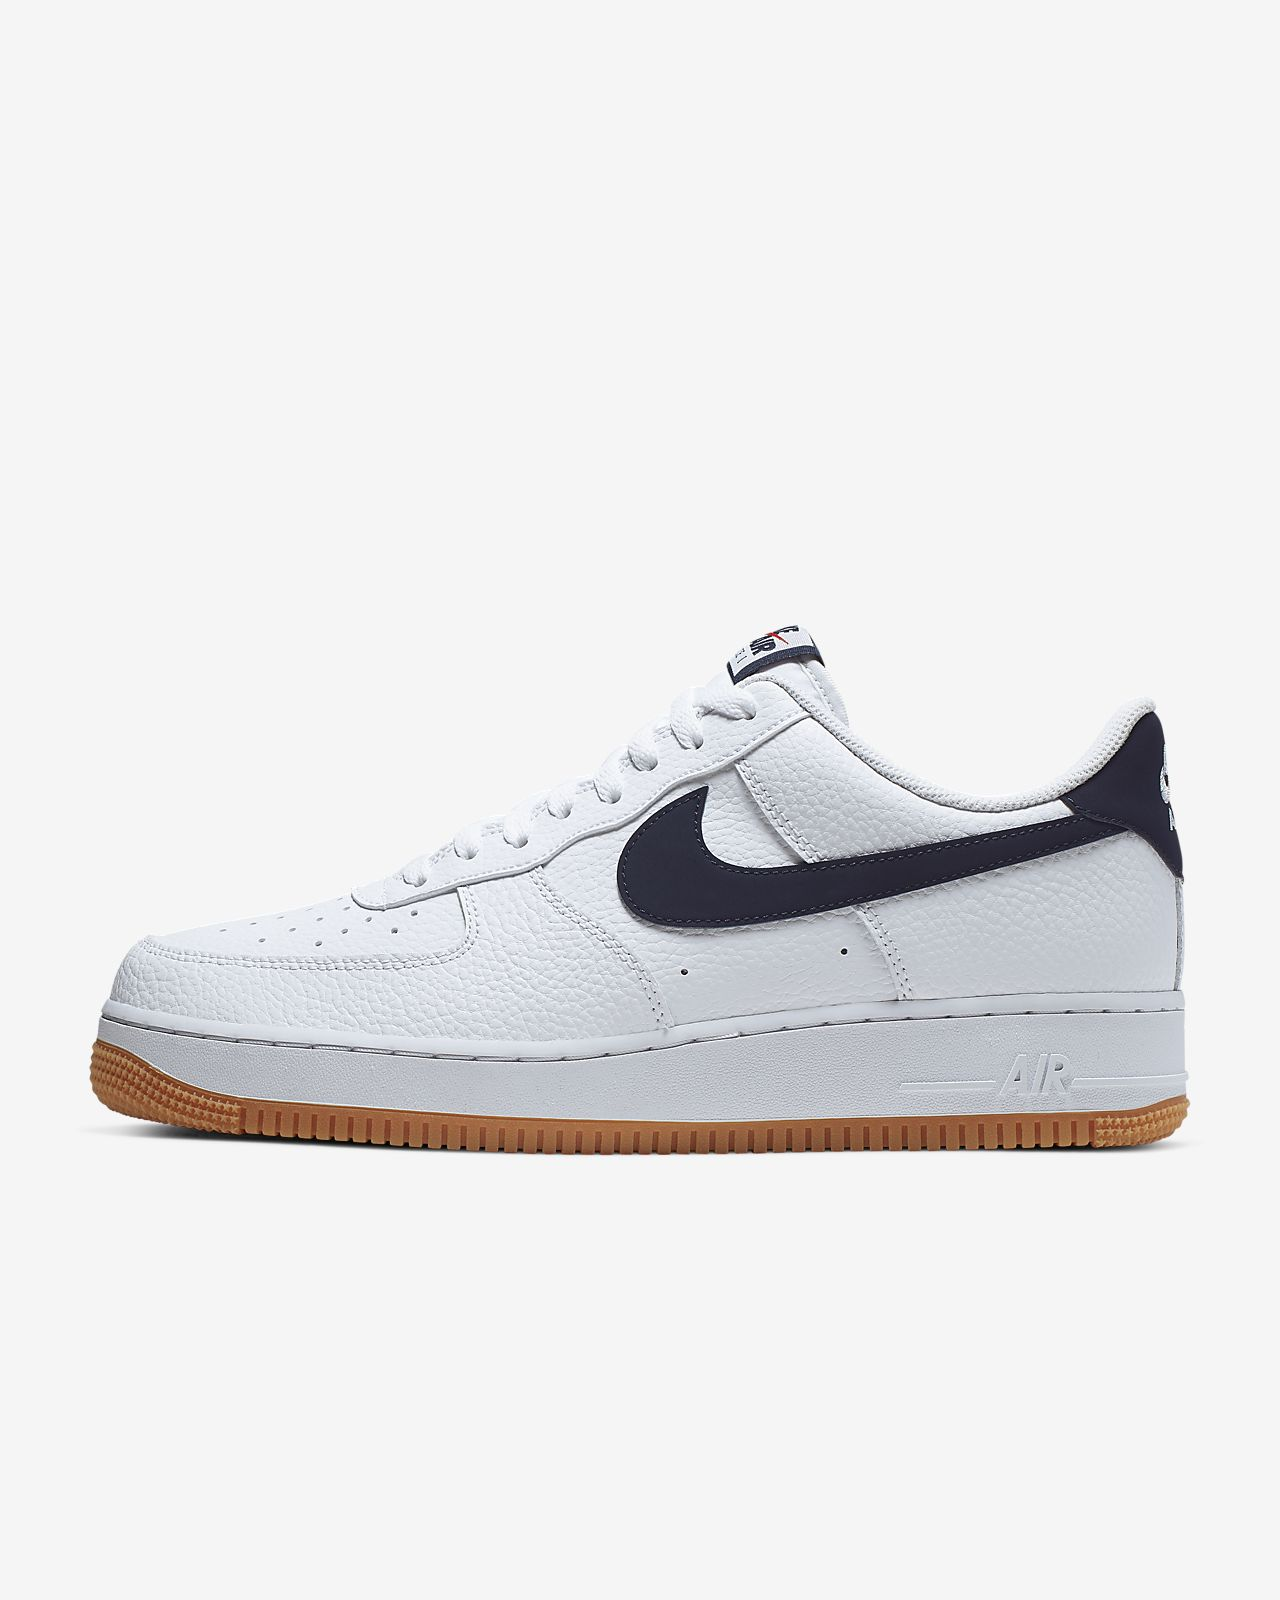 Air Force Pour 1 Chaussure Hommefr Nike Ozpkxui vNwOym8nP0